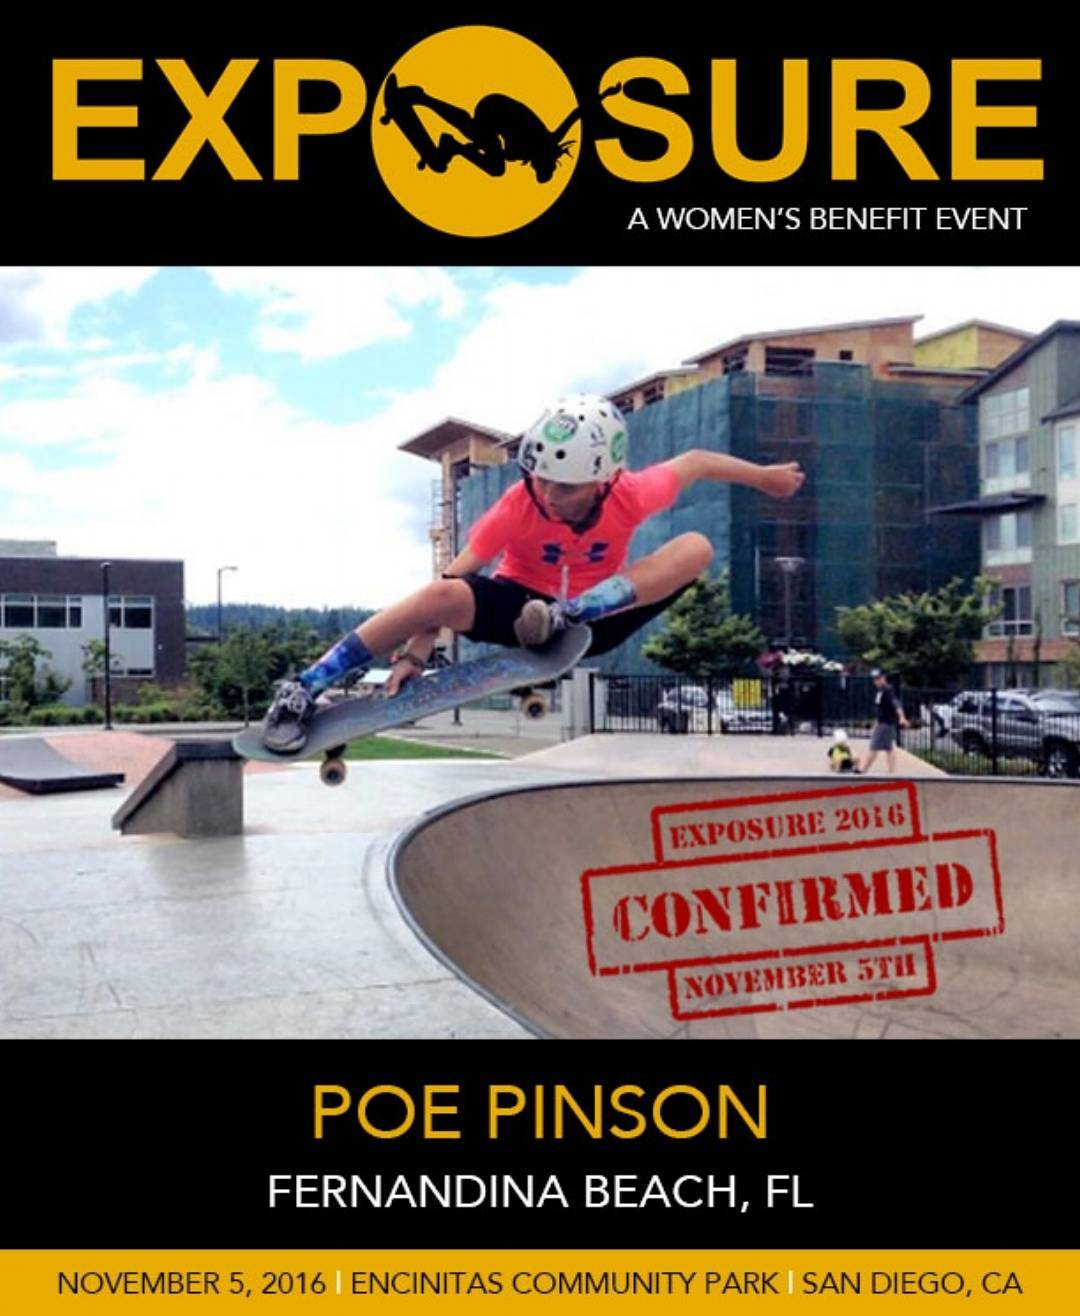 @poepinson will be showing us her super raw talent in the 14 & Under Street and Bowl competition!!